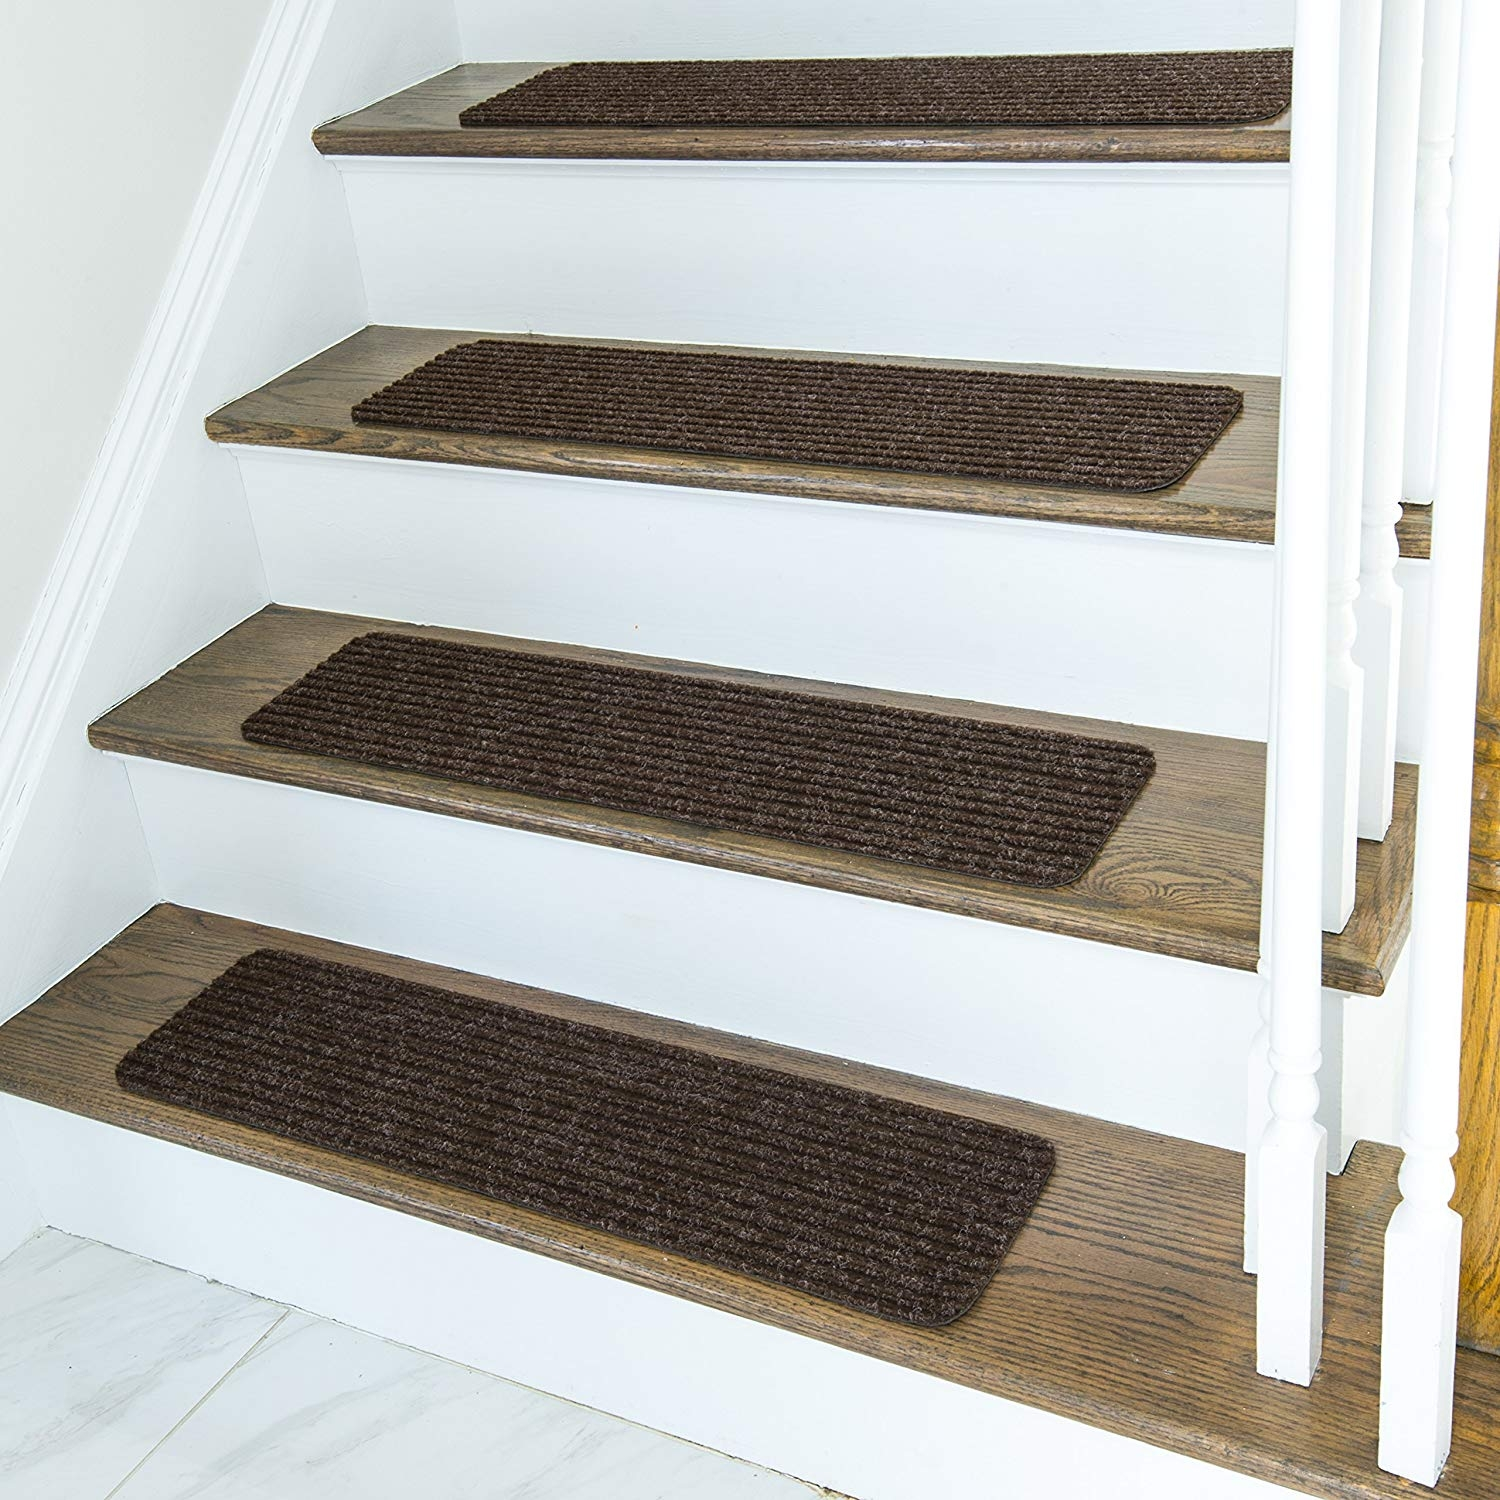 Top 10 Carpets For Stairs In 2020 Highly Recommend In 2020 | Protecting Carpet On Stairs | Stair Treads Carpet | Carpet Mats | Non Slip Mat | Self Adhesive | Flooring